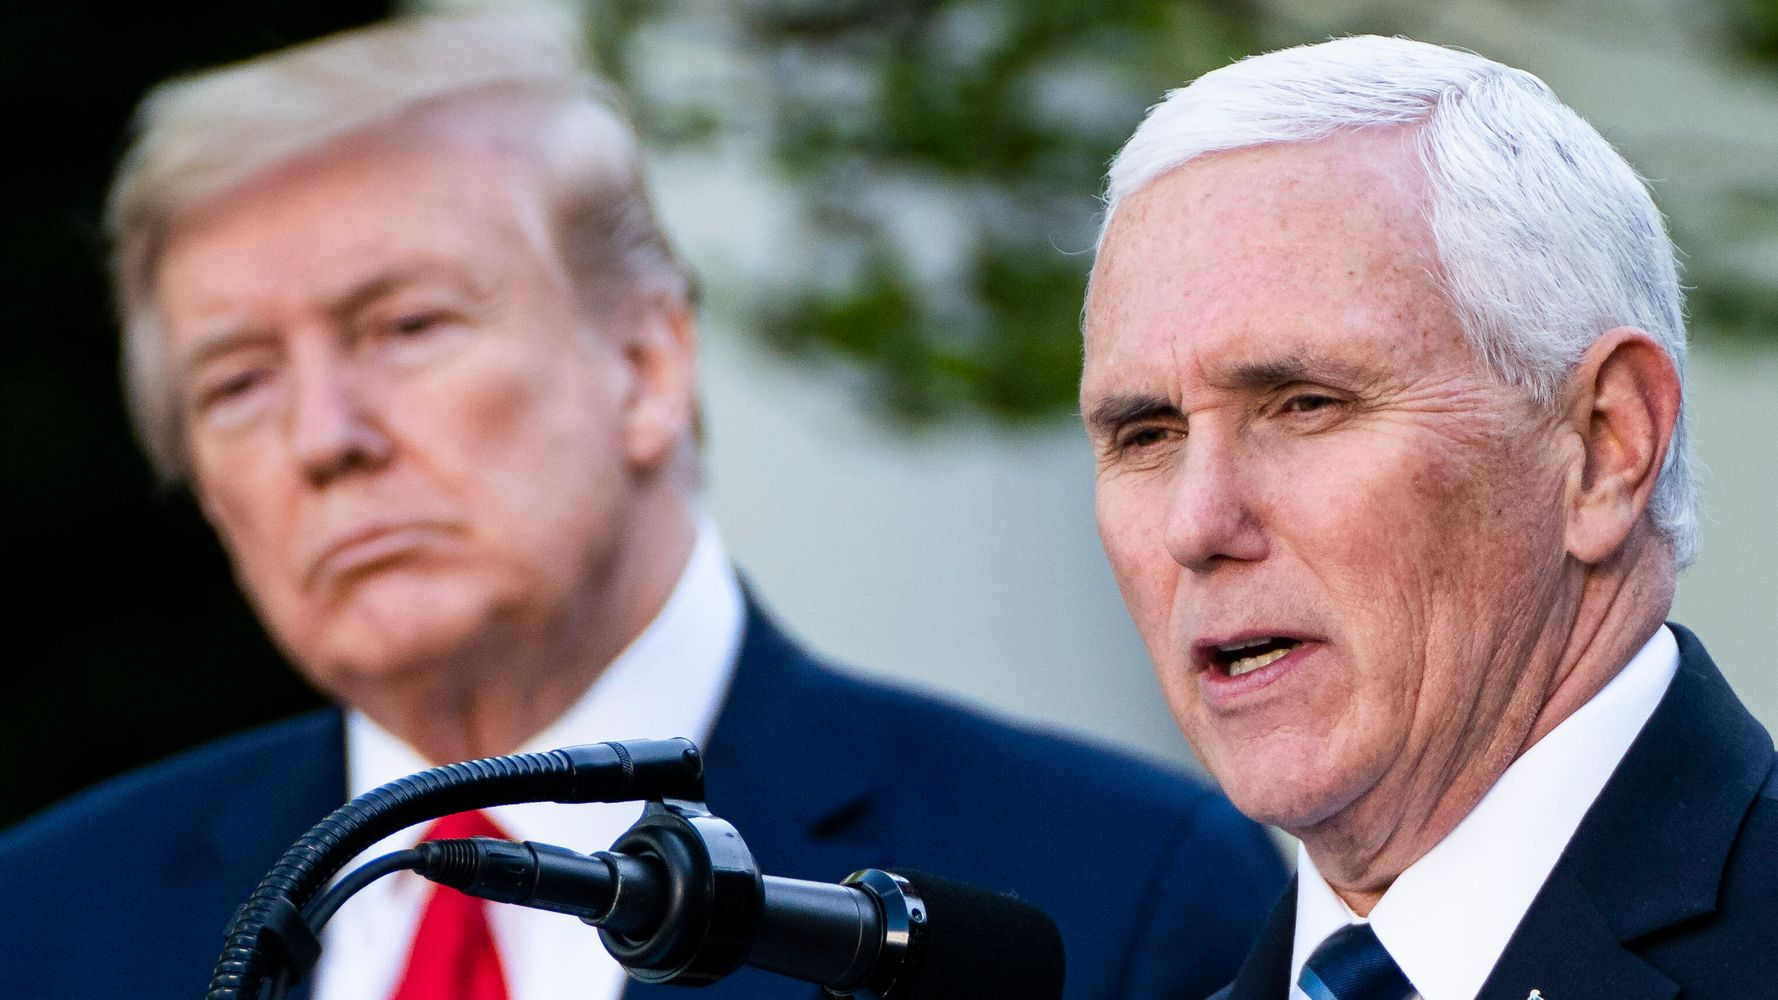 Mike Pence Gets Near-Instant Fact Check Over Mail-In Voting Hypocrisy